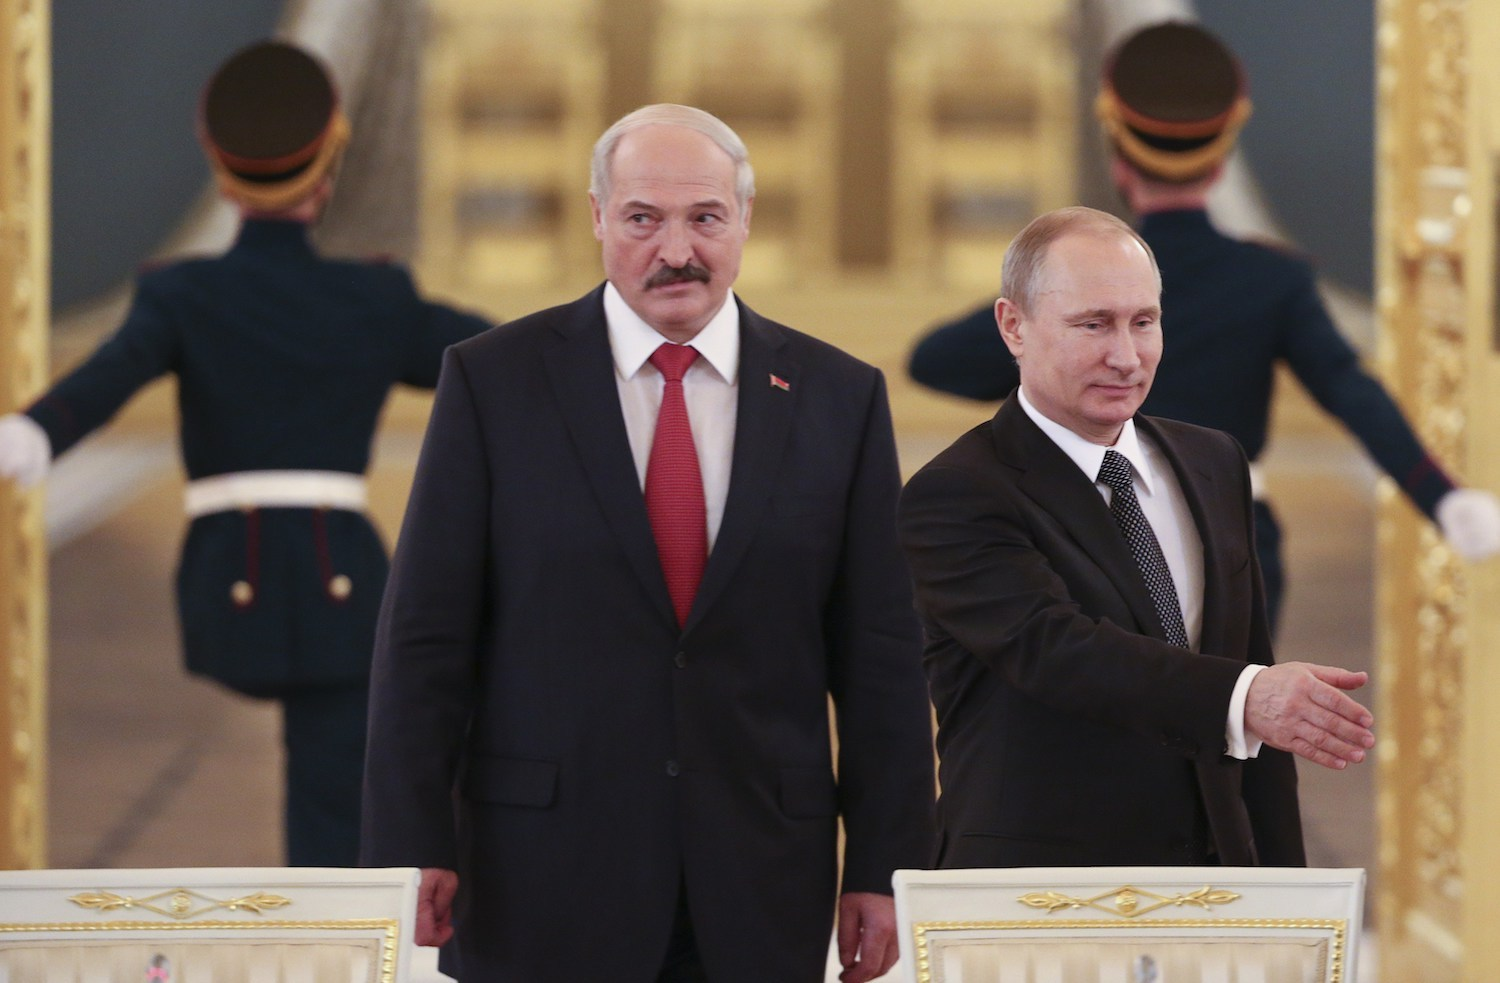 Belarusian President Alexander Lukashenko and Russian President Vladimir Putin attend a session of the Supreme State Council of the Union State at the Kremlin in Moscow on March 3, 2015. Photo: Sergei Karpukhin/AFP.